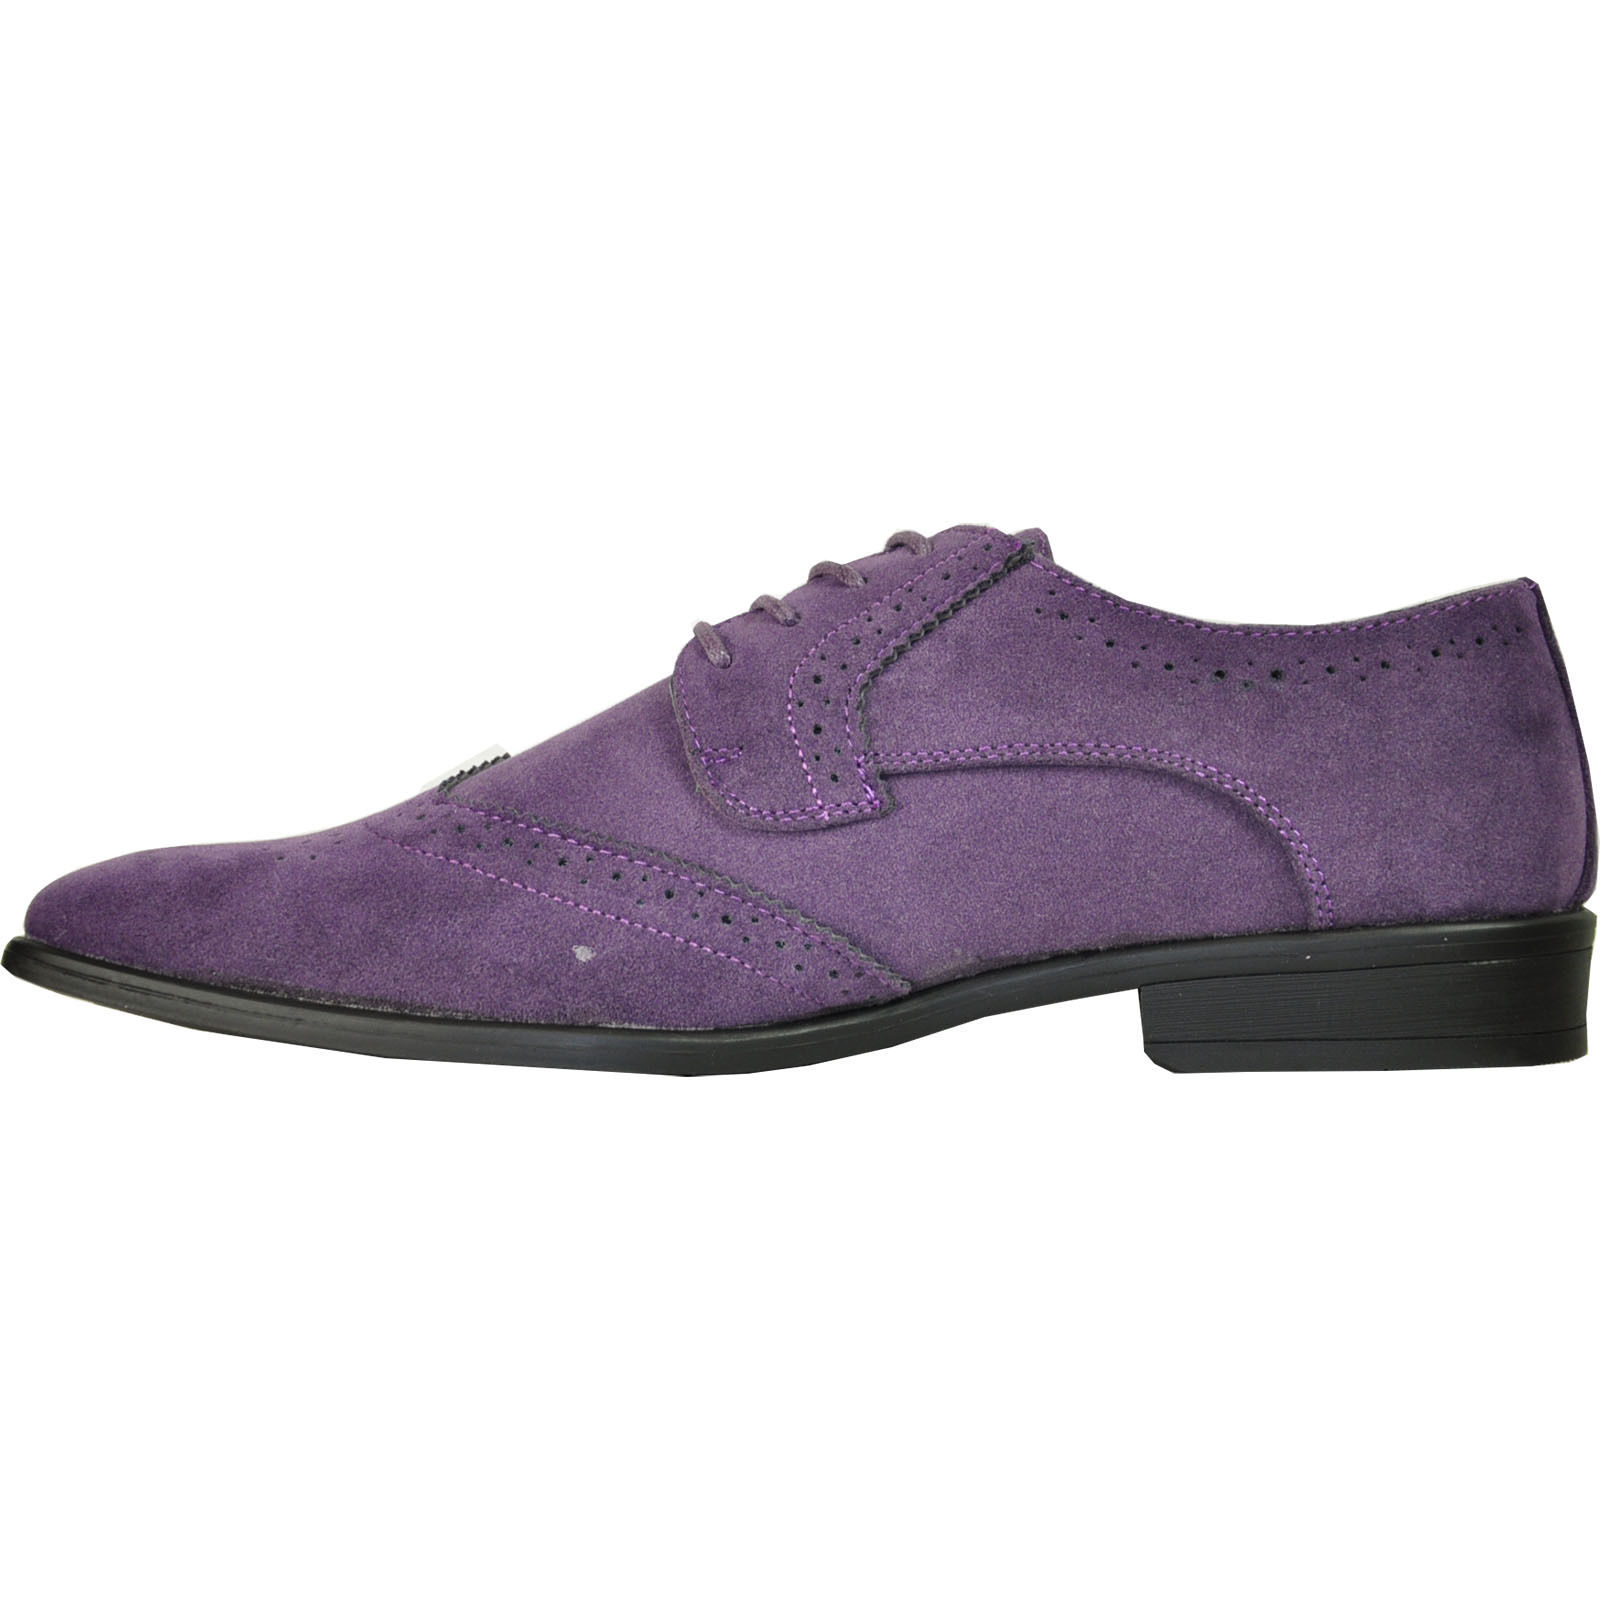 BRAVO//KING-3 Dress Shoe Classic Faux Suede Oxford Leather Lining Grey